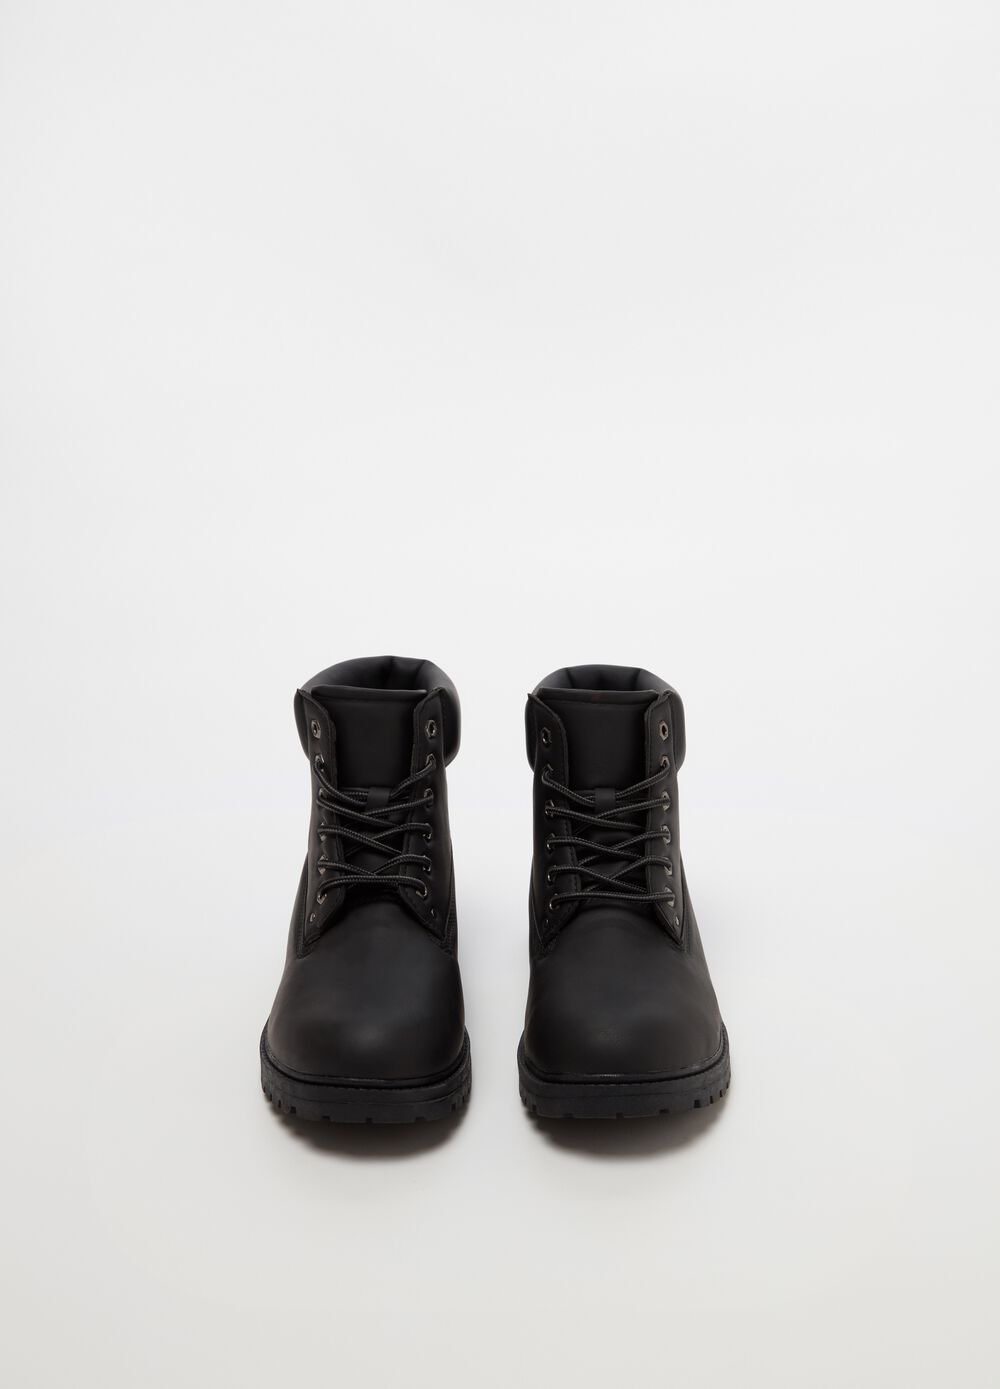 Boots with laces and rubber sole